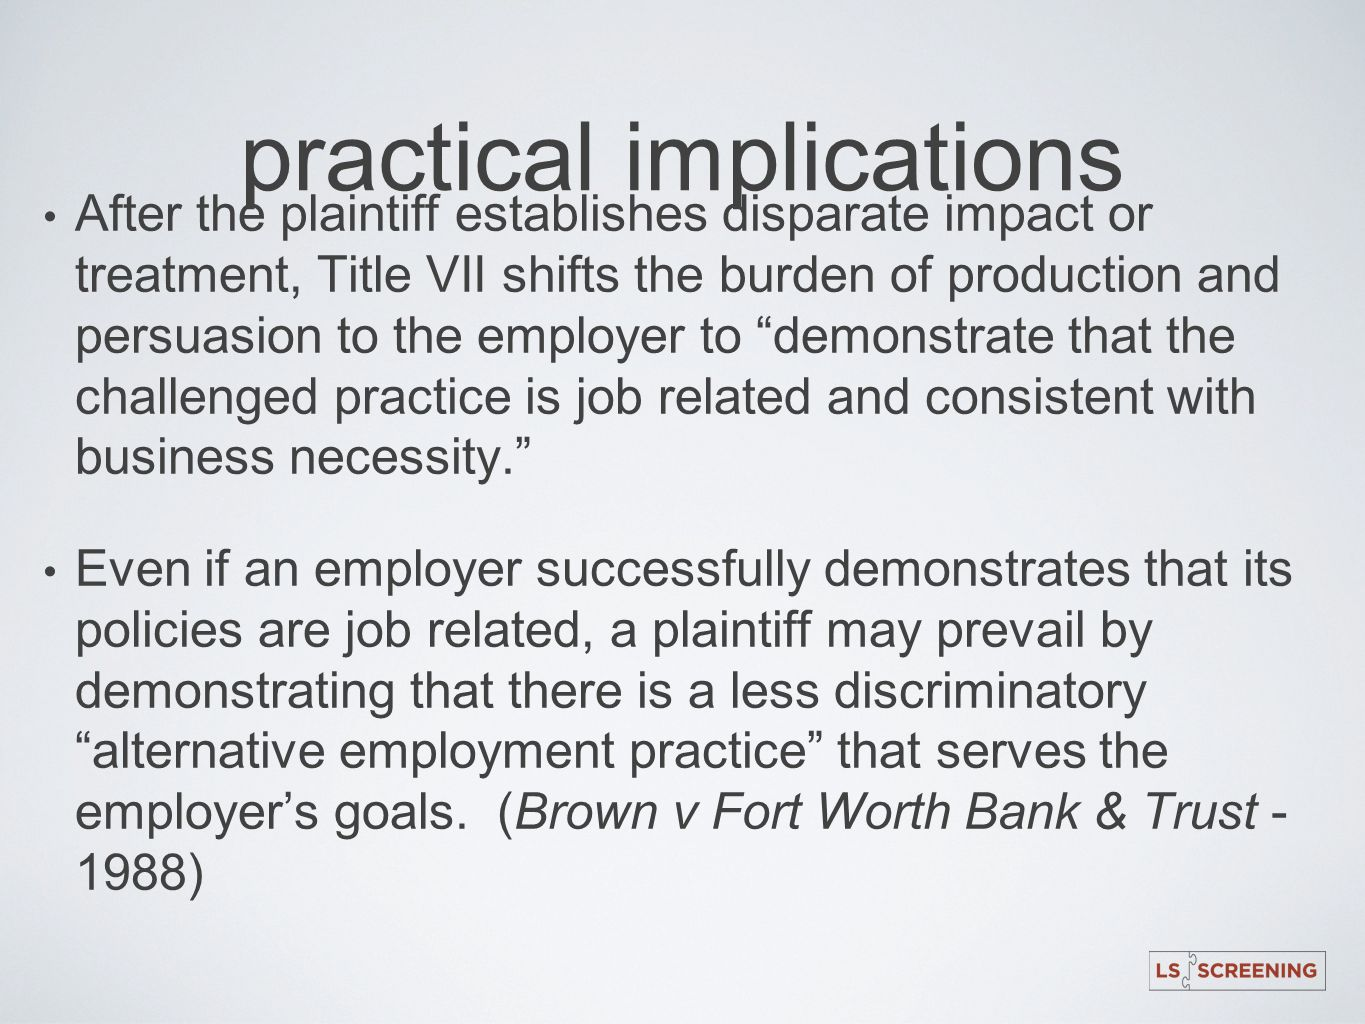 practical implications After the plaintiff establishes disparate impact or treatment, Title VII shifts the burden of production and persuasion to the